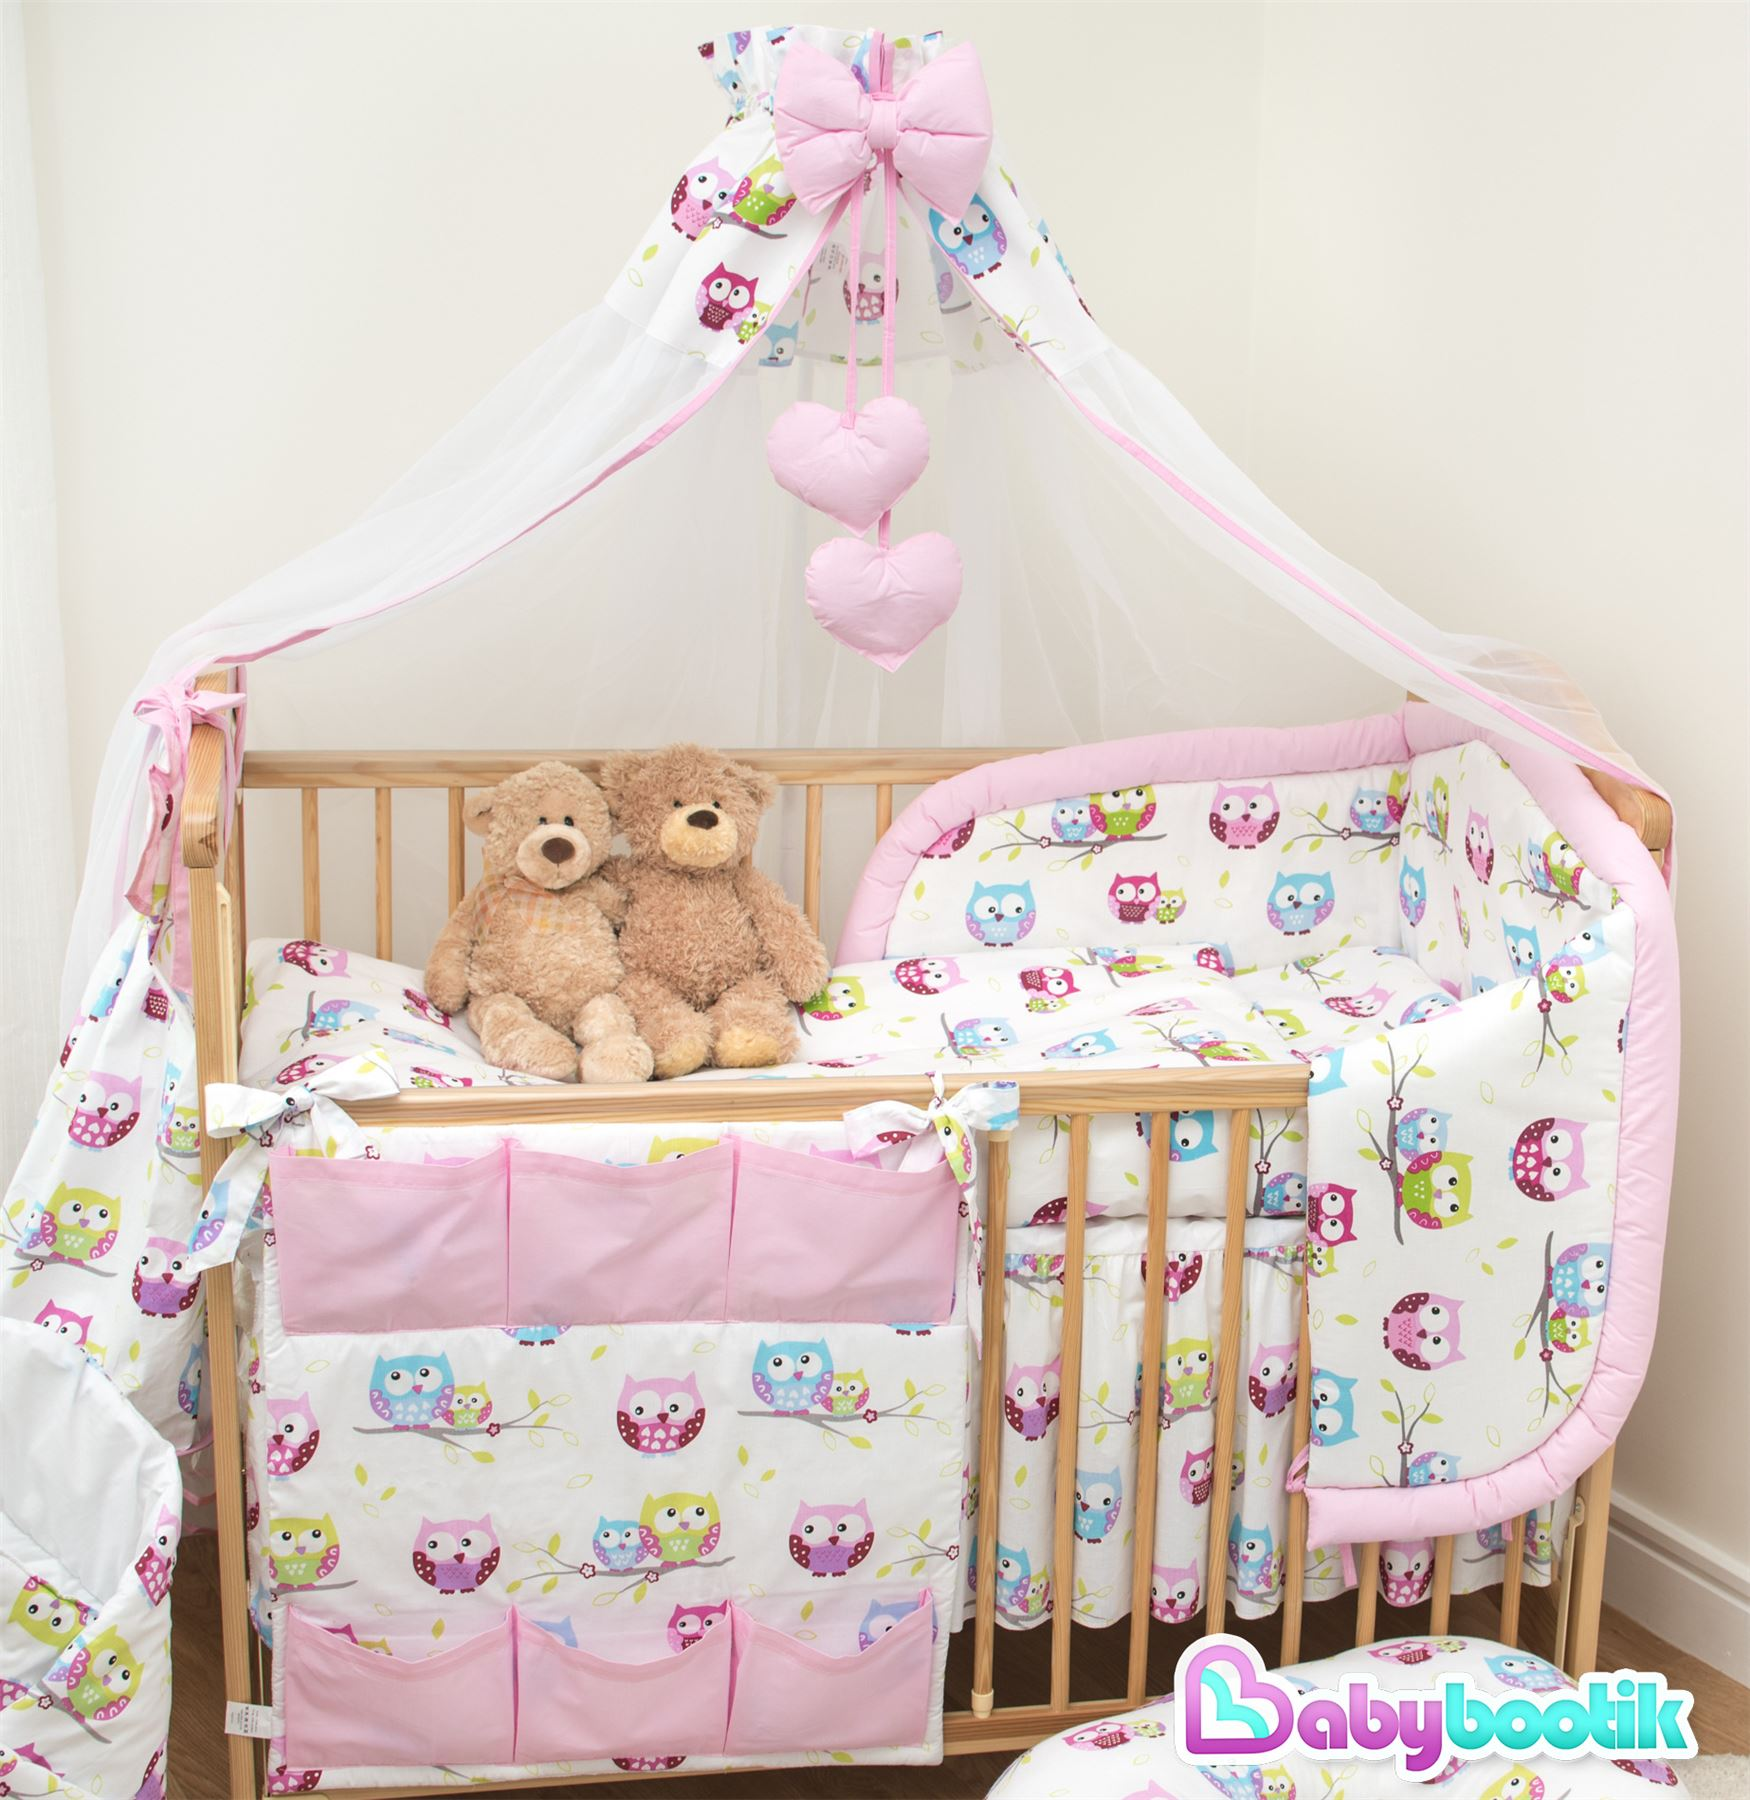 Lovely Jungle Animals I Baby Cot Bedding Sets For Girls Boys Baby 9 Piece Crib Bedding And Bumper Set Infant Unisex Cot Sheet Duvet Pillow Bumper 140 X 70 120x60 Pink 100 Cotton